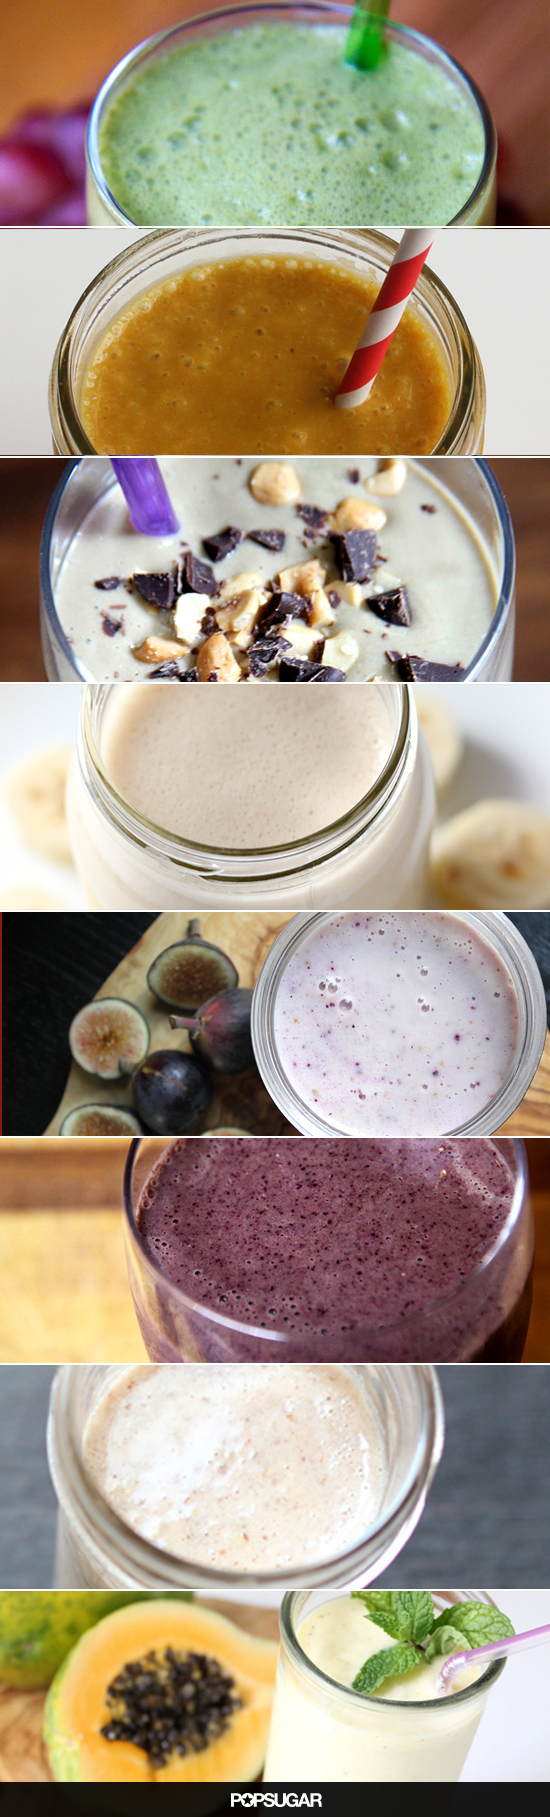 Bloated? Hungover? Dull Skin? We've Got the Smoothie to Cure You